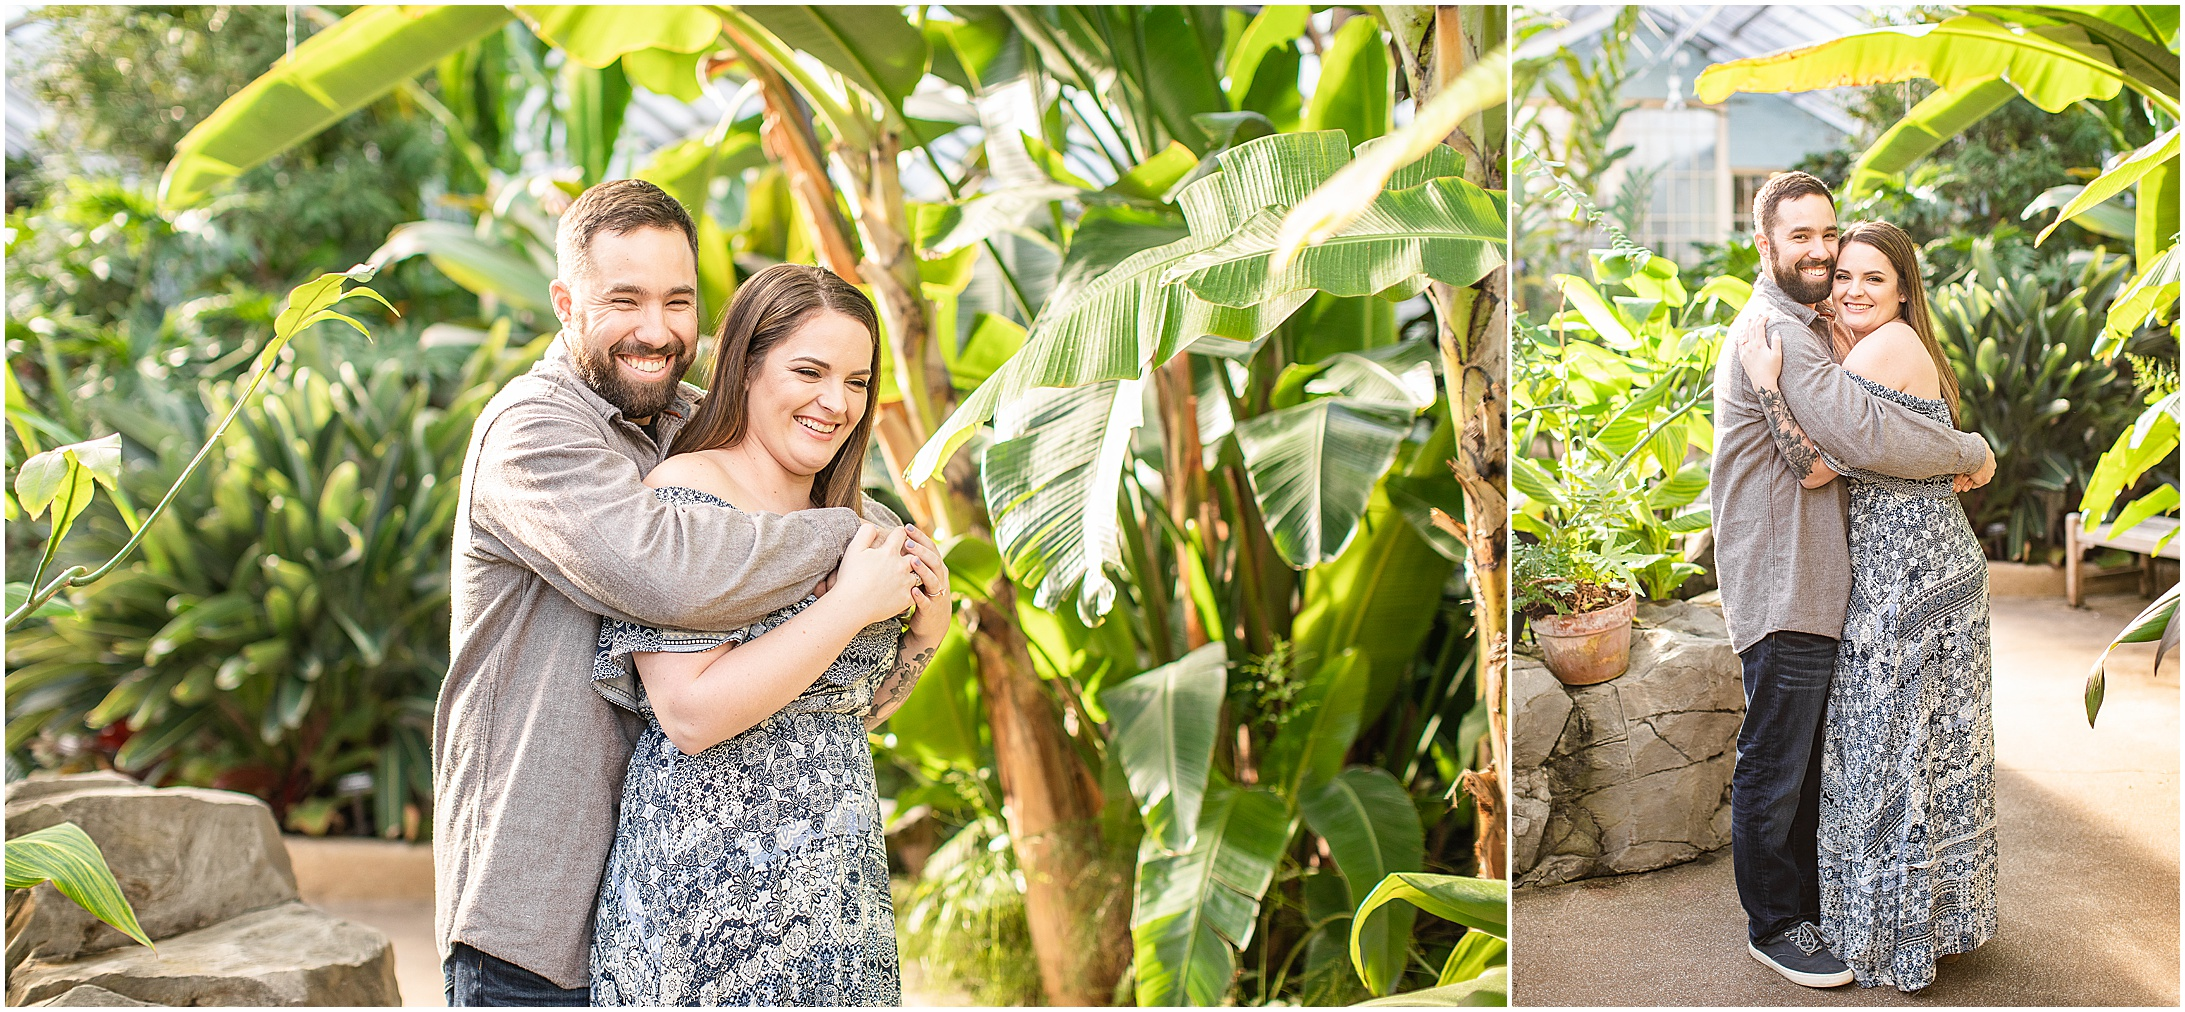 Rawlings-Conservatory-Engagement-Photos_0279.jpg